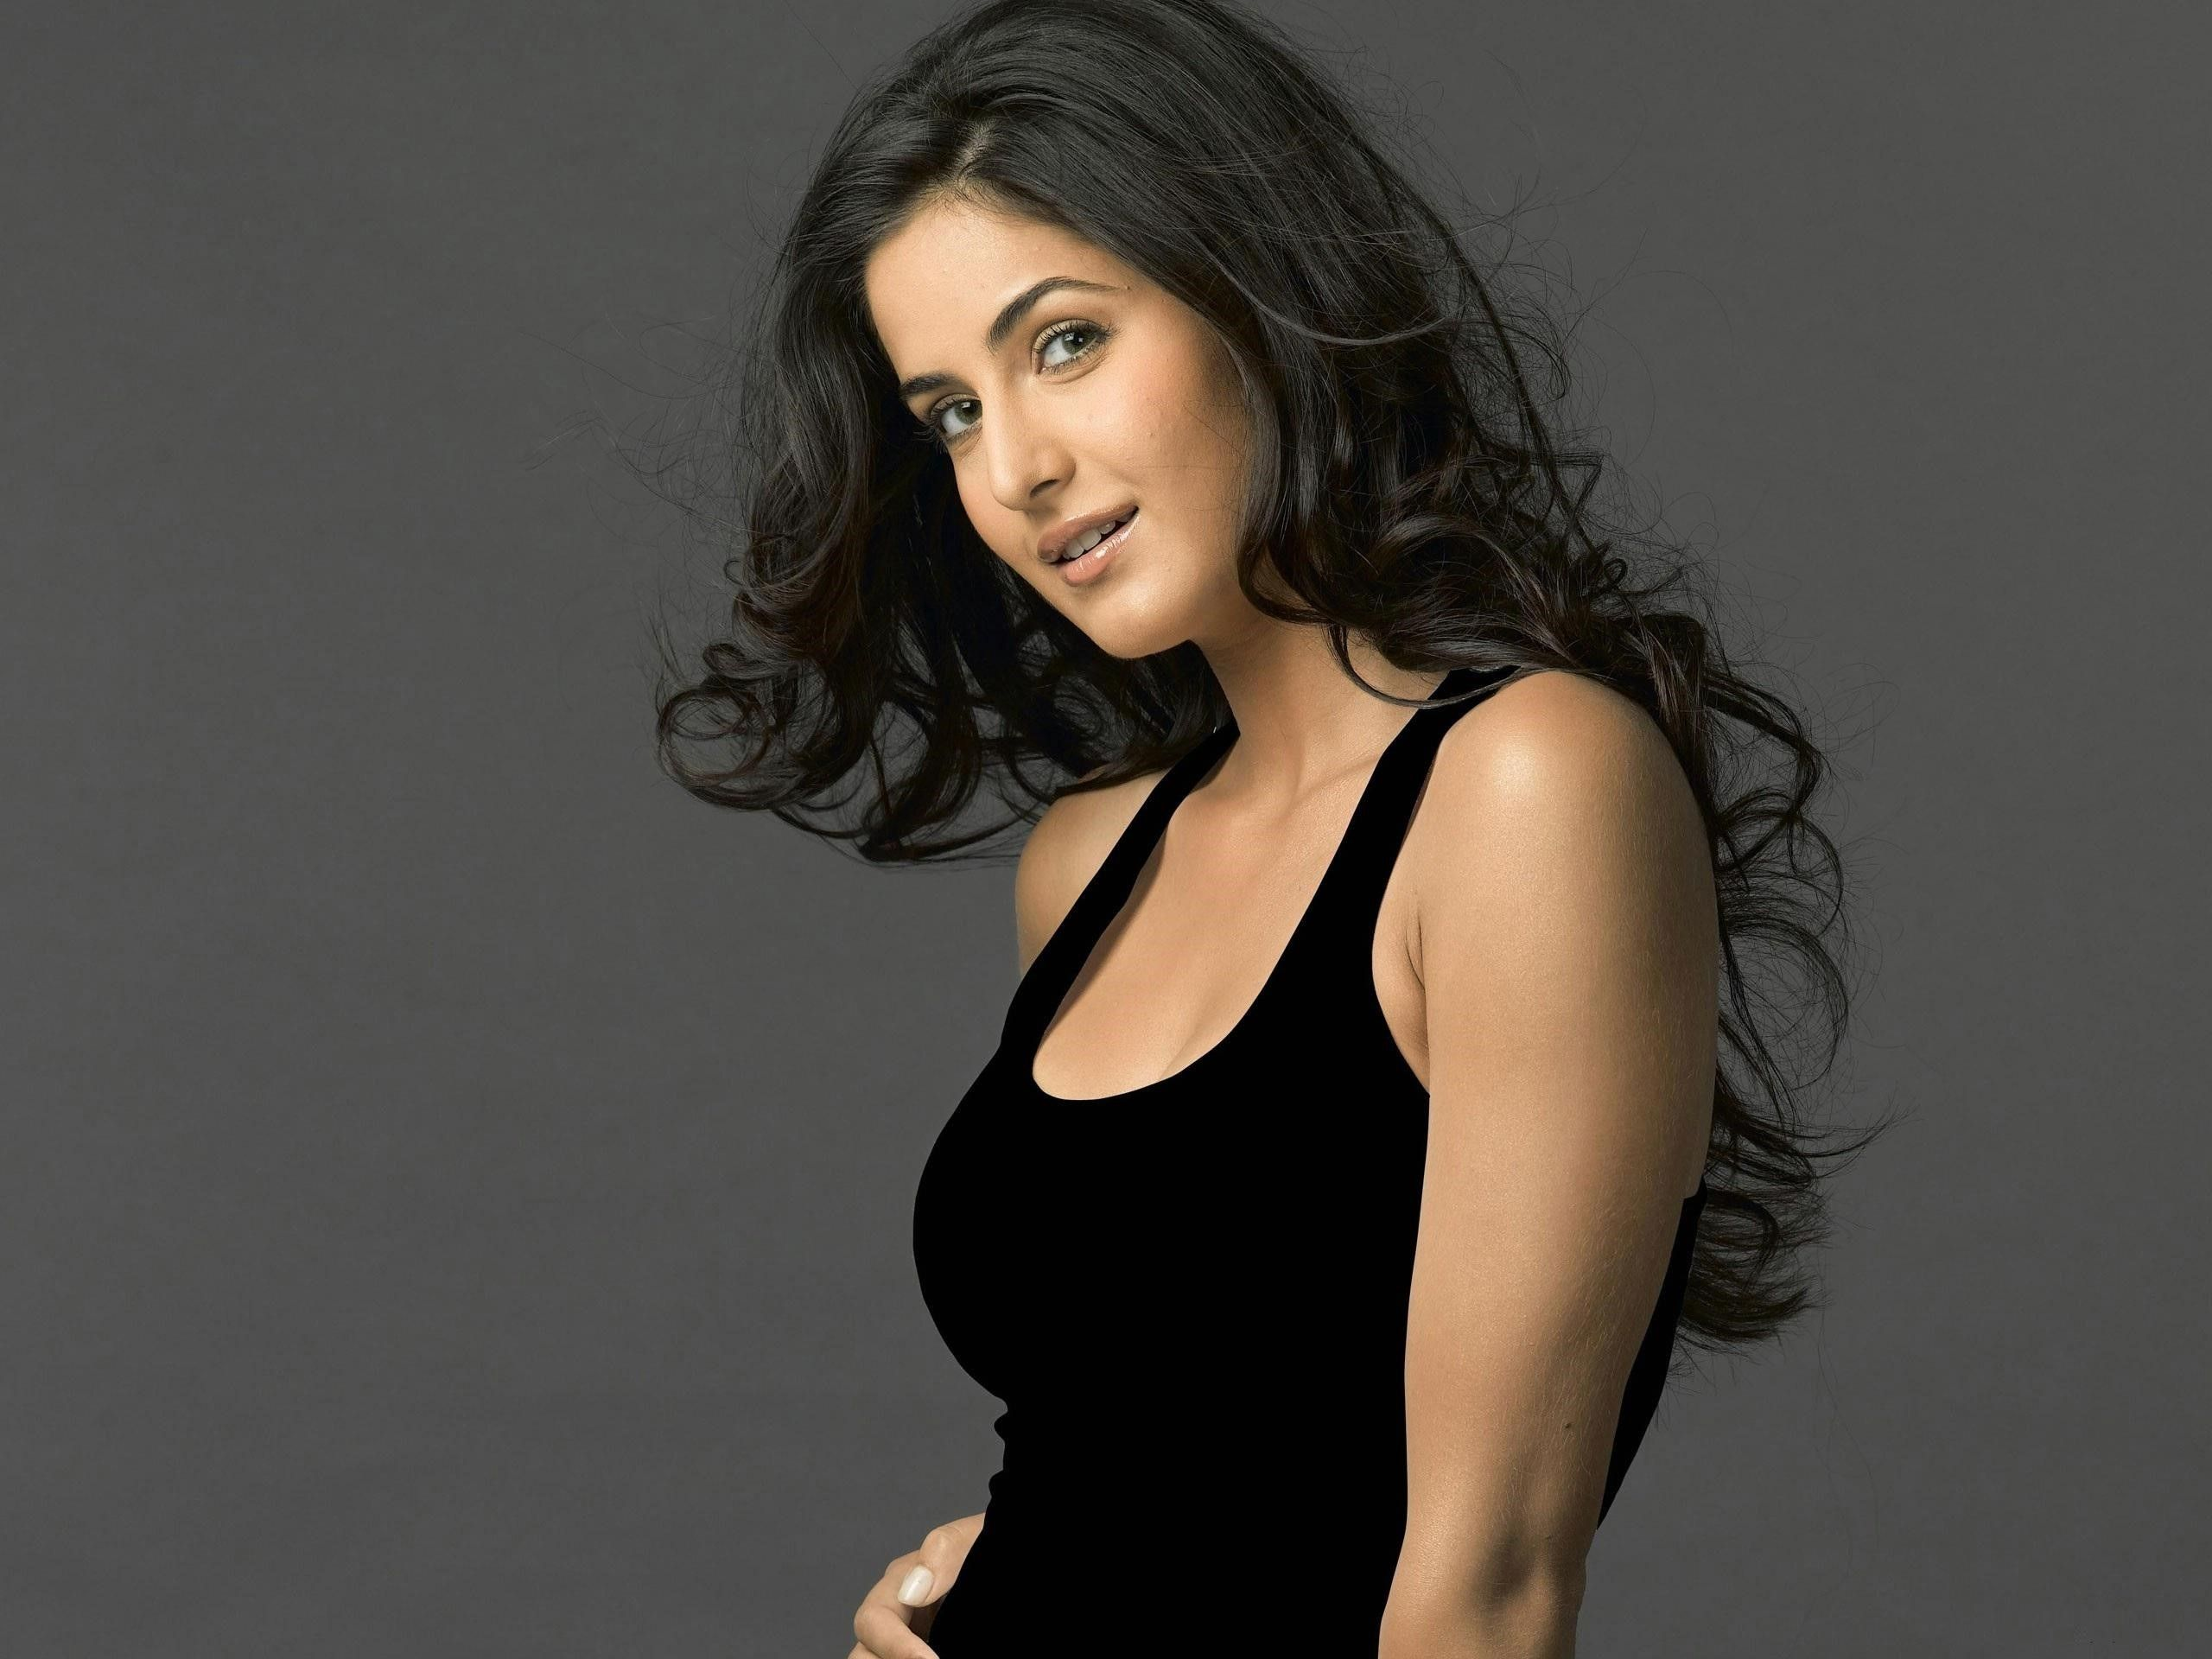 Katrina Kaif In Dhoom 3, FHDQ Wallpapers For Free